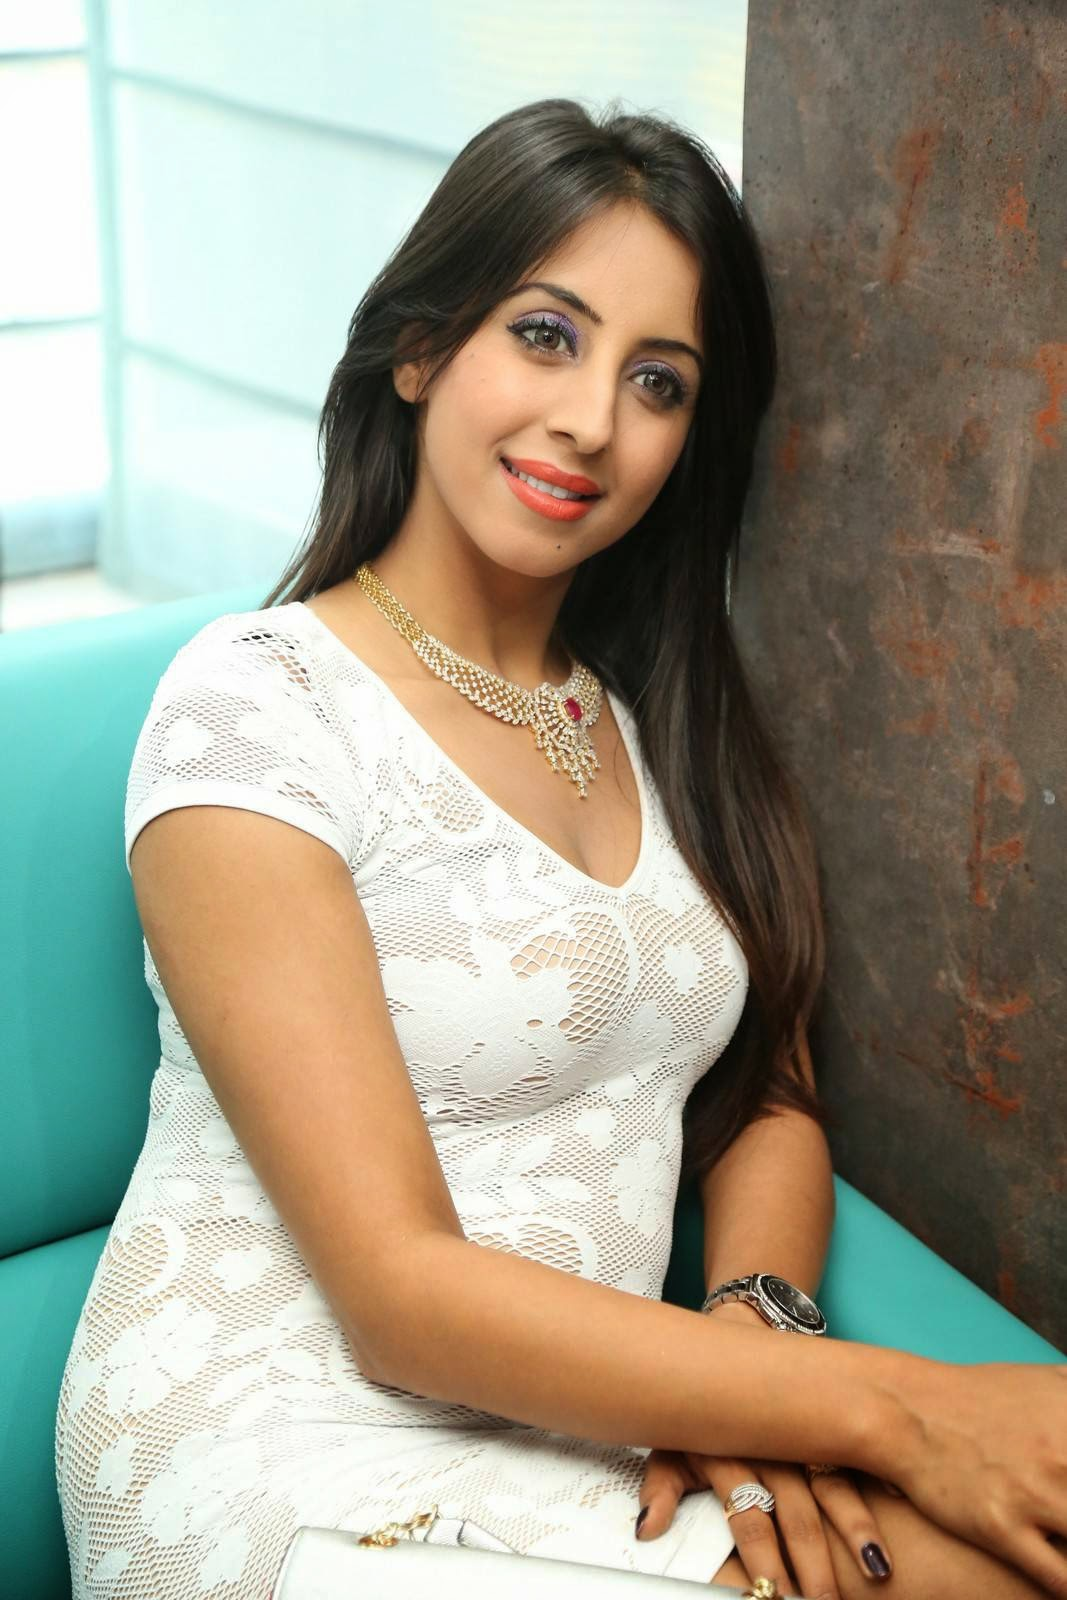 Naked Sanjjanaa 91 Photo Pussy, Youtube-5474